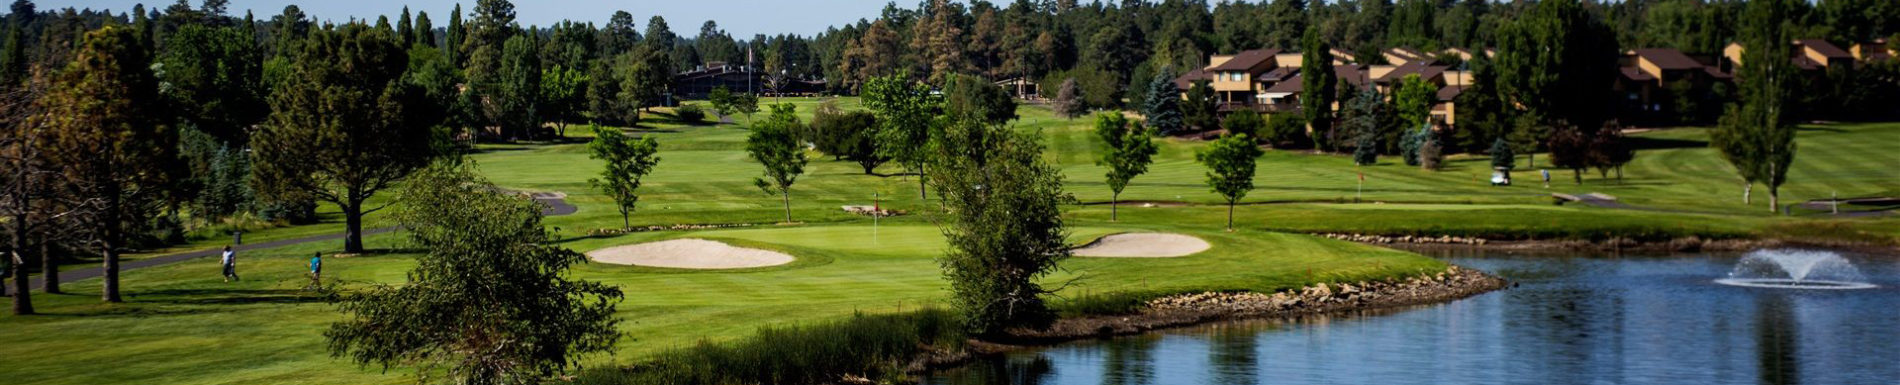 A picturesque golf course awaits you in Flagstaff.